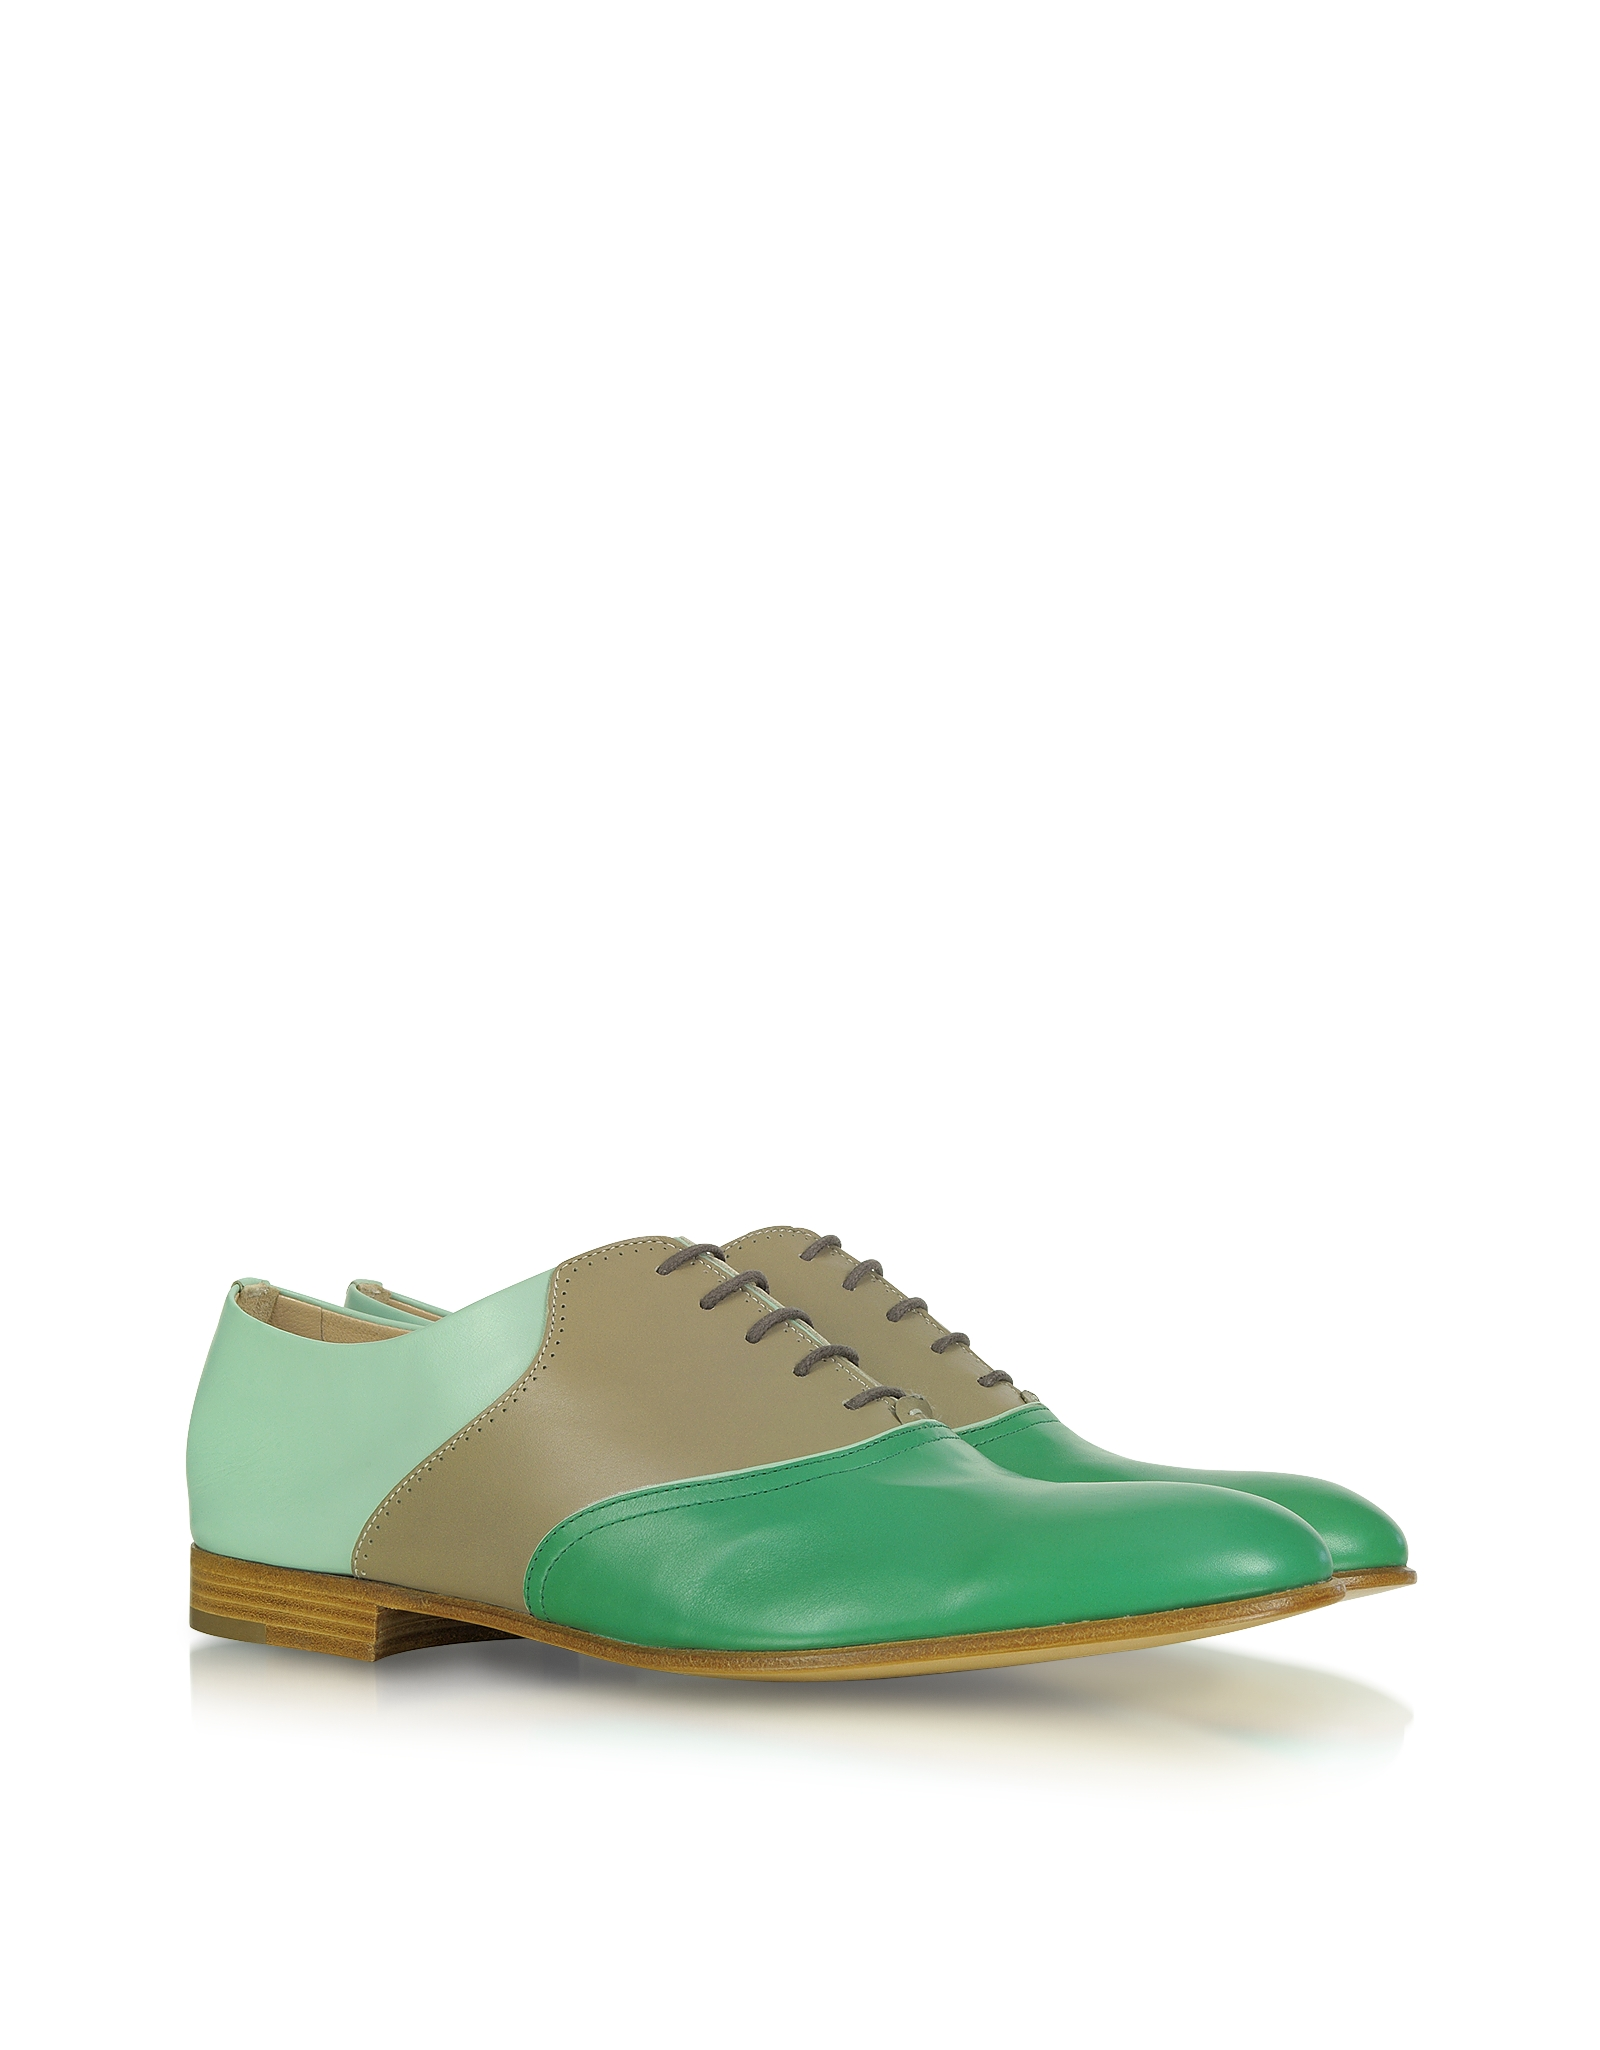 Fratelli Rossetti Color Block Leather Oxford Shoes In Green | Lyst